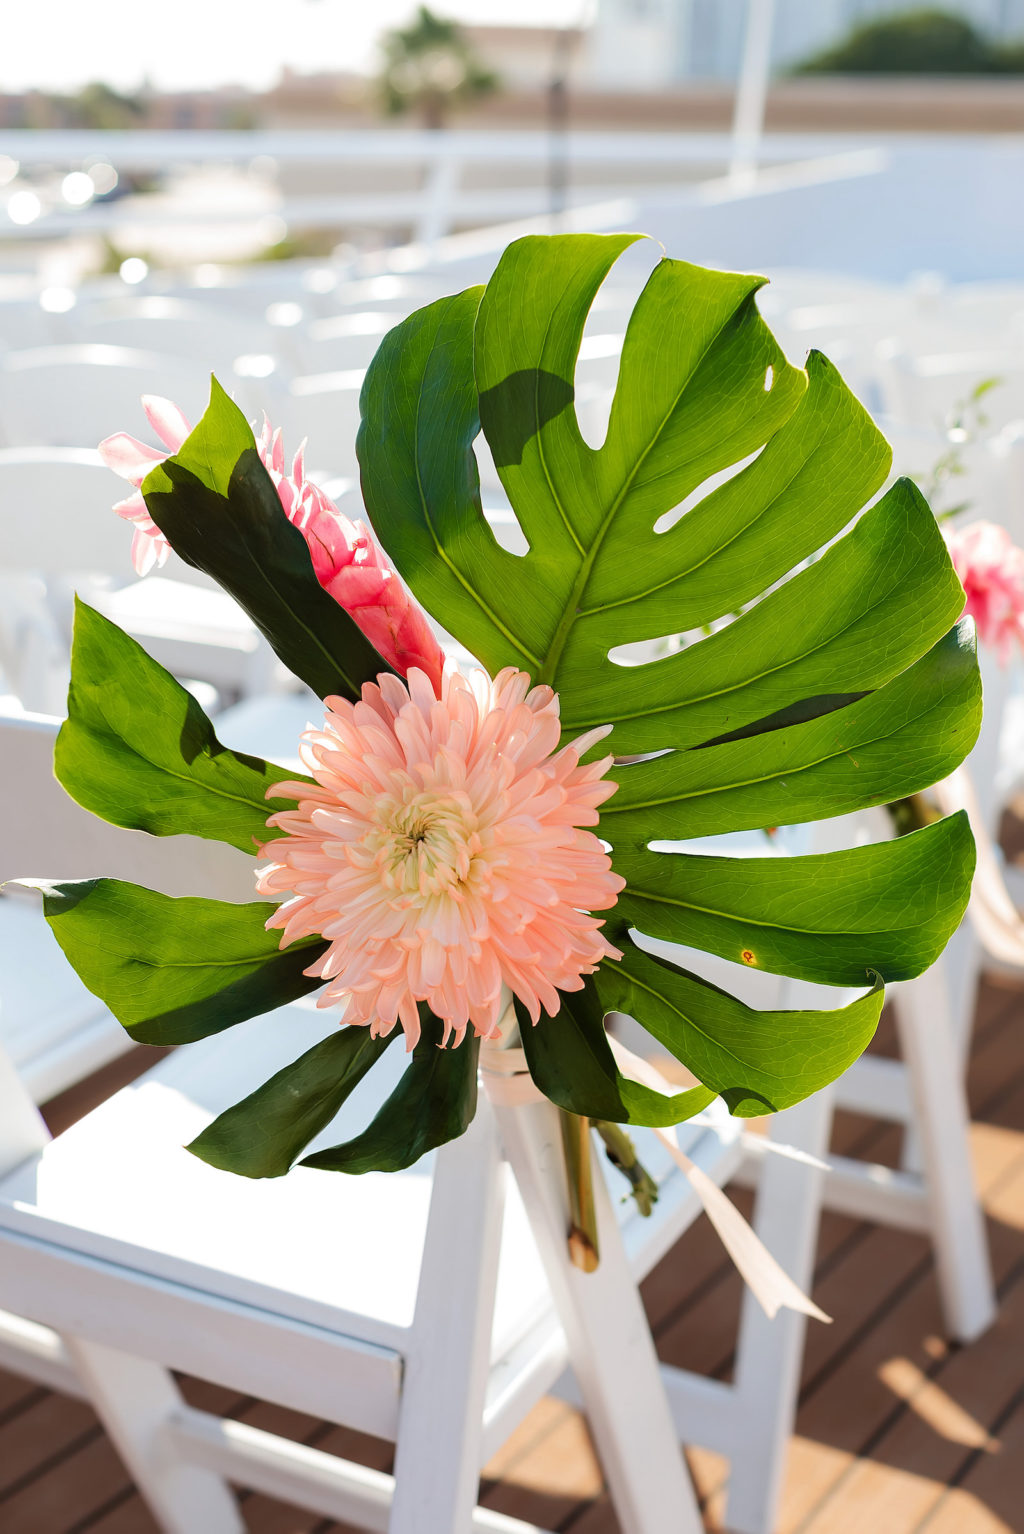 Tropical Wedding Ceremony Decor, Monstera Palm Leaf with Pink Flower Arrangement on Chair   Tampa Bay Wedding Photographer Limelight Photography   Waterfront Wedding Venue Yacht StarShip